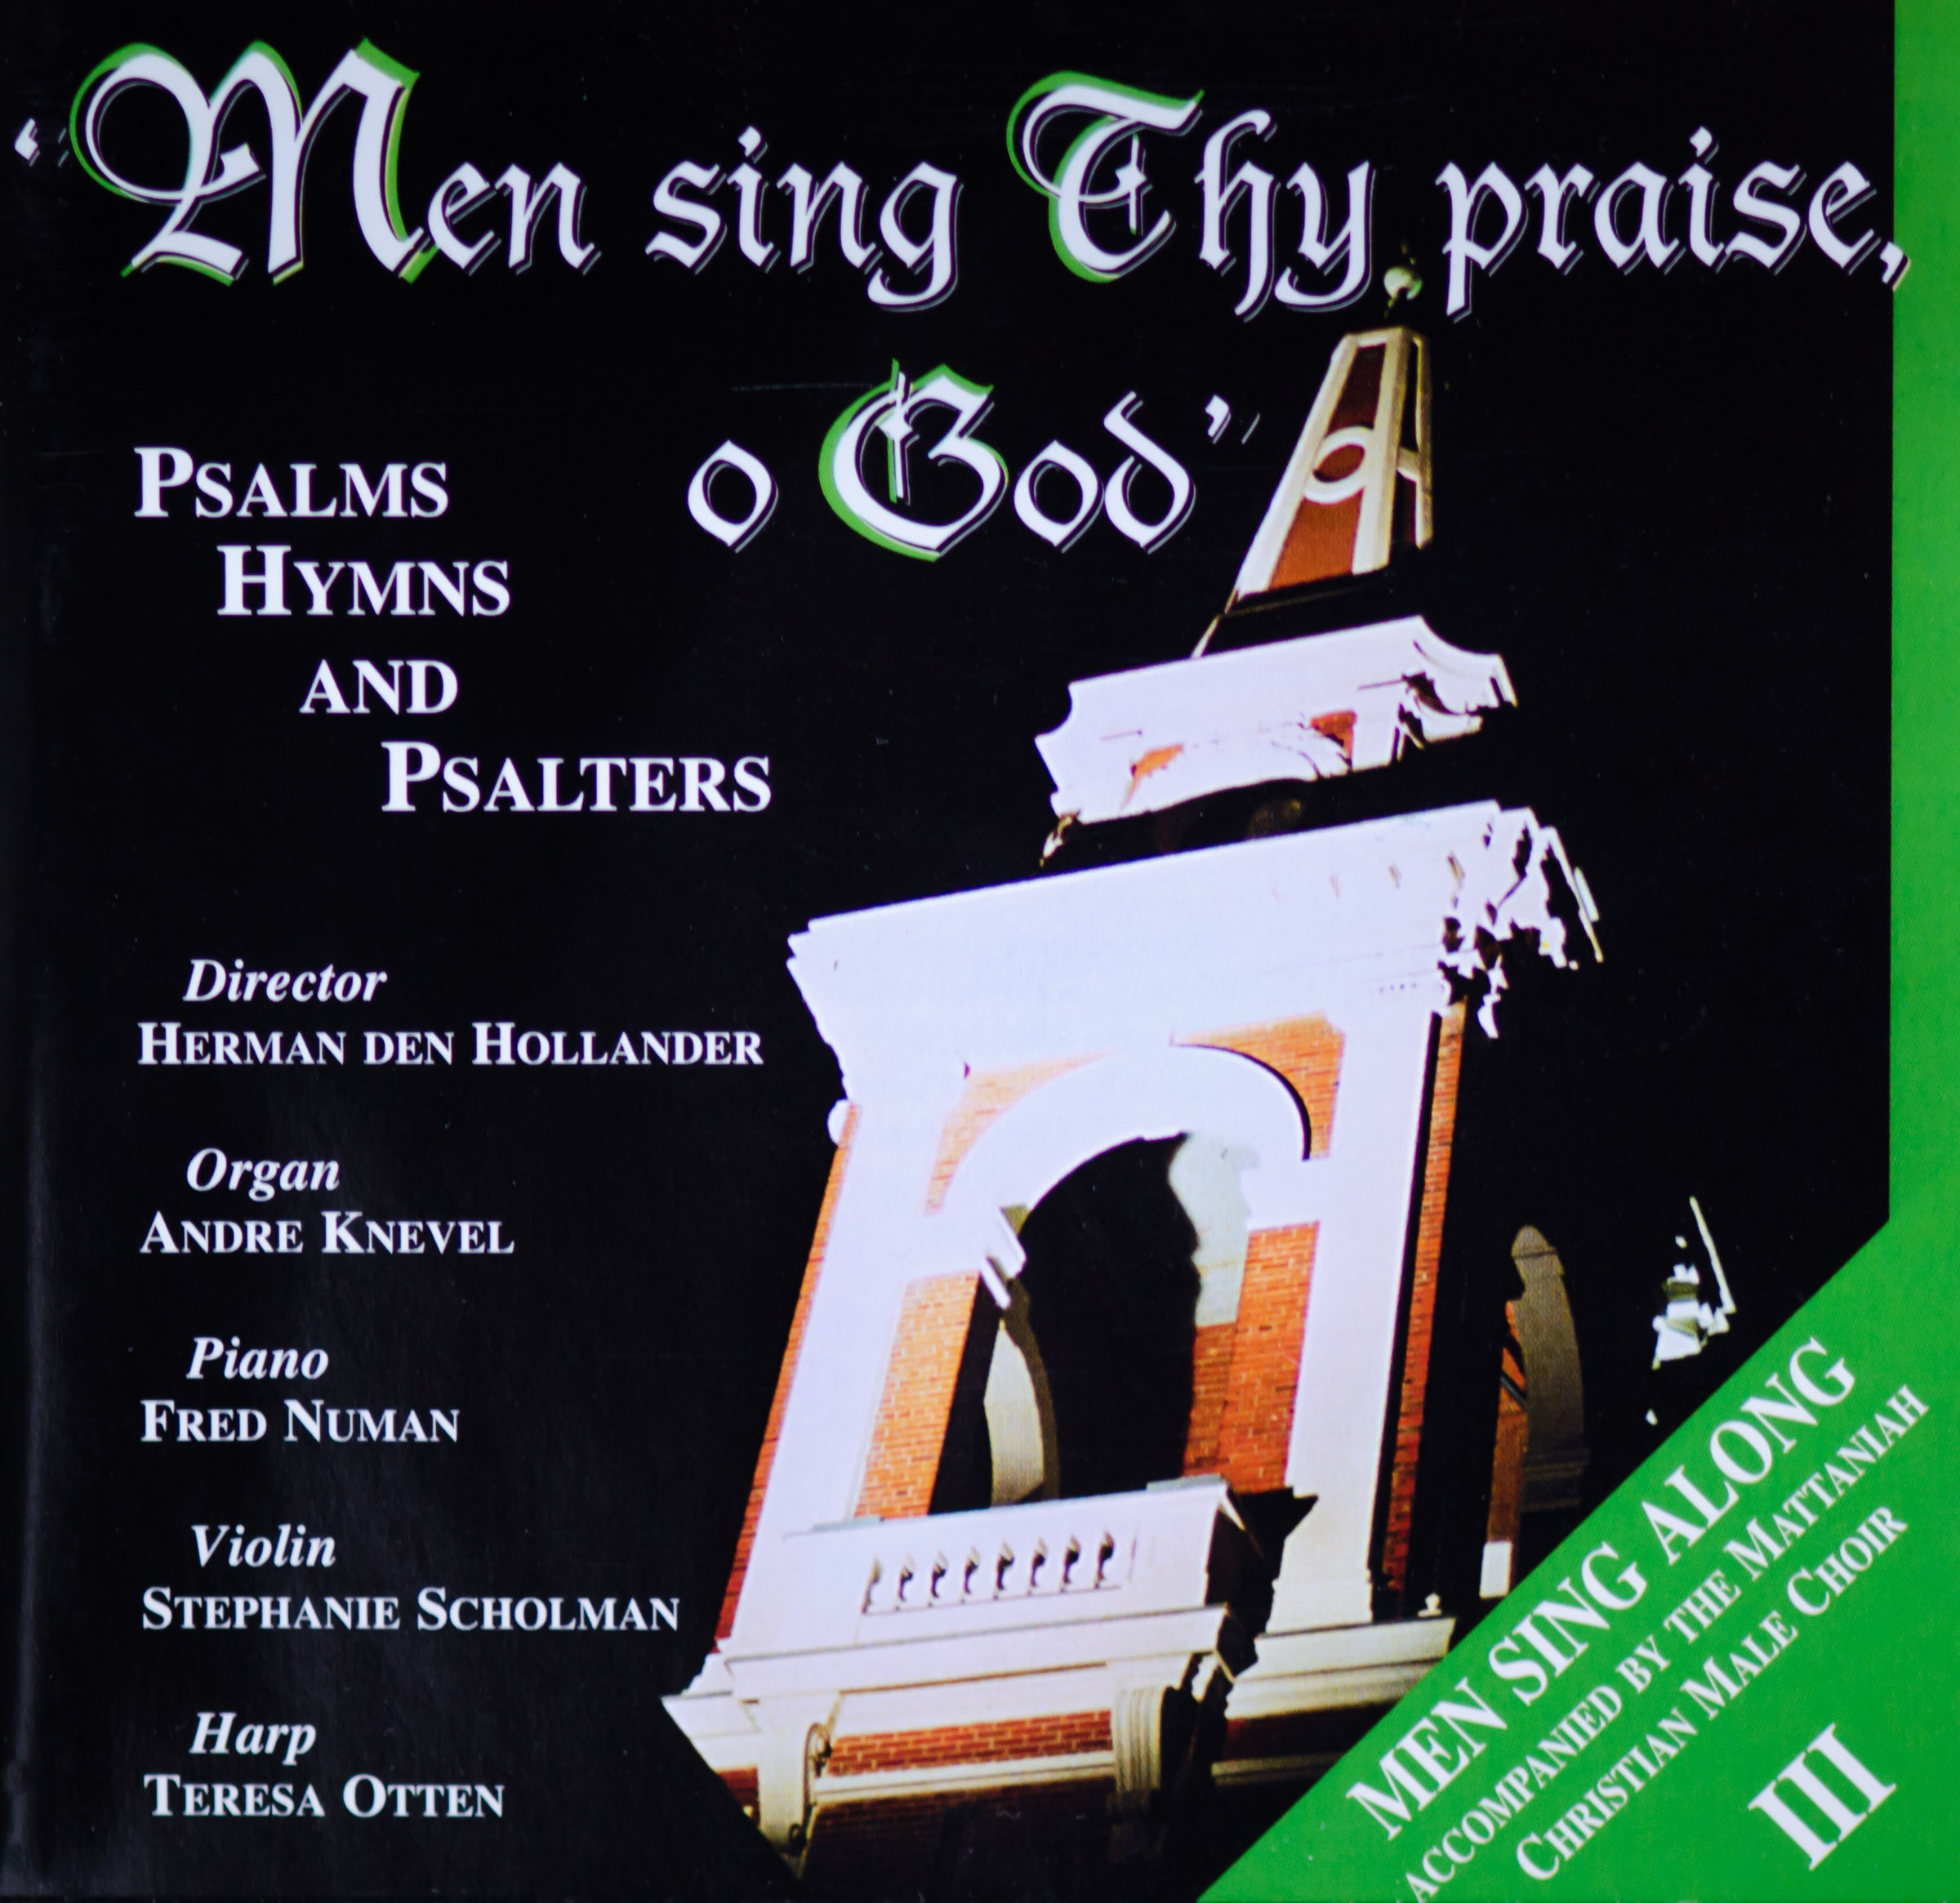 Men Sing Thy Praise O God 3 (1 of 1).jpg